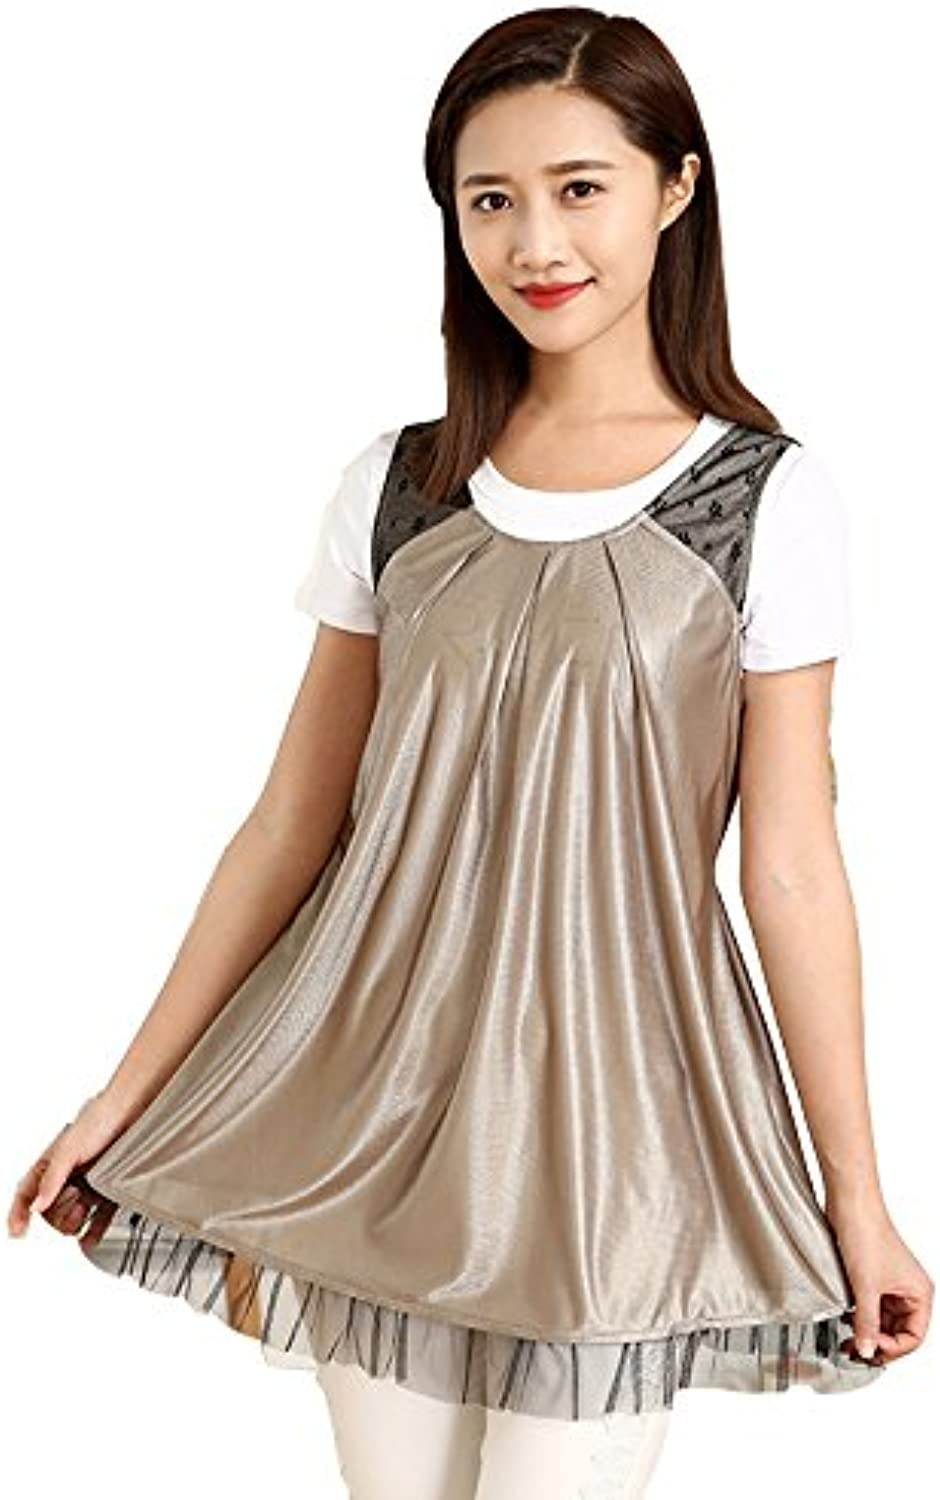 DMMSS Radiation Suit Maternity Dress Authentic Summer Dresses